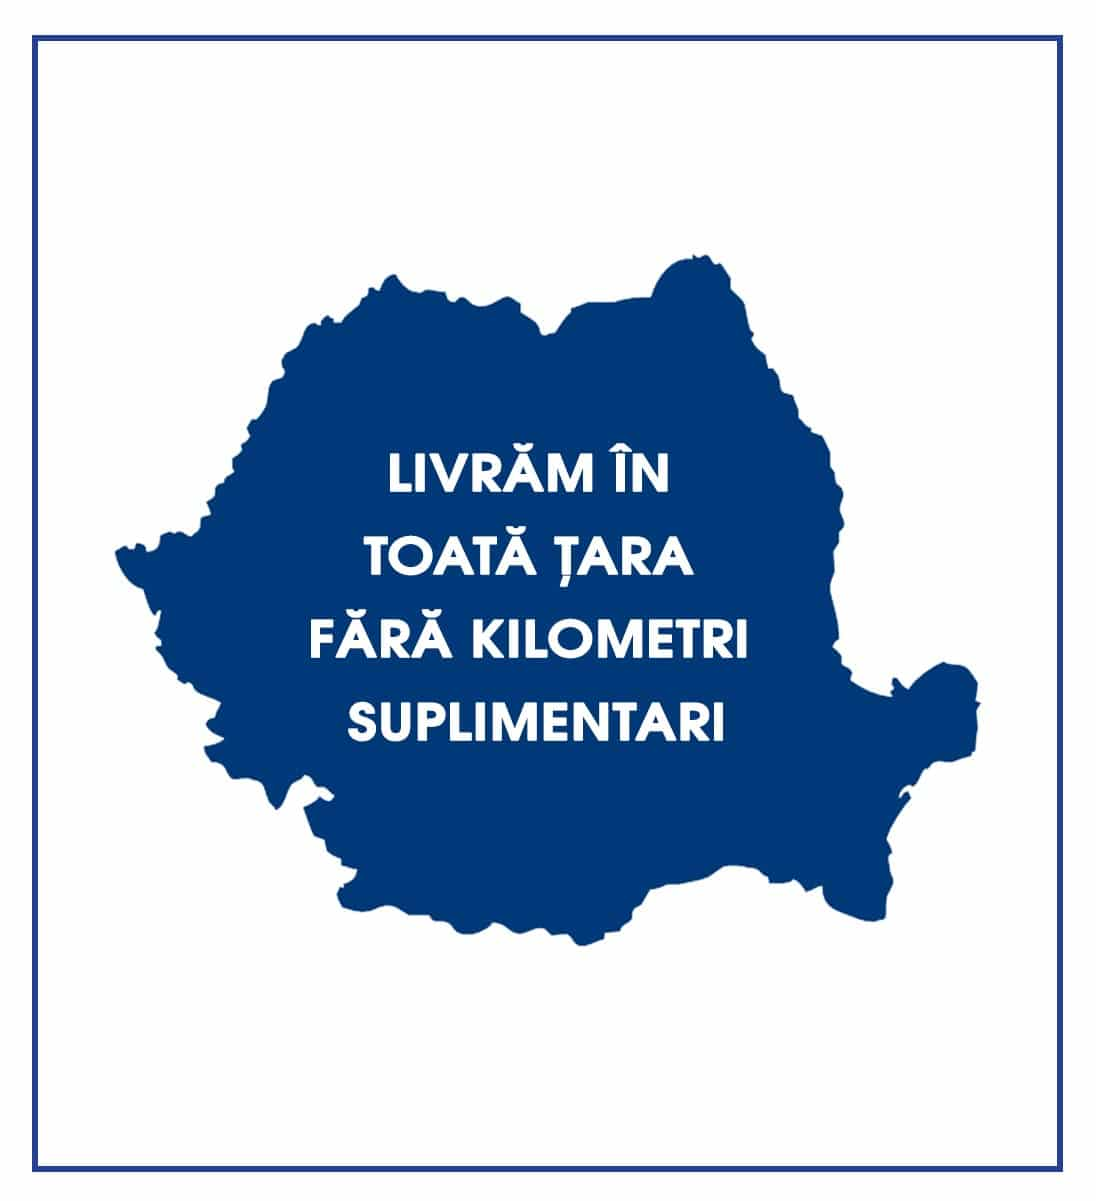 livram in toata tara